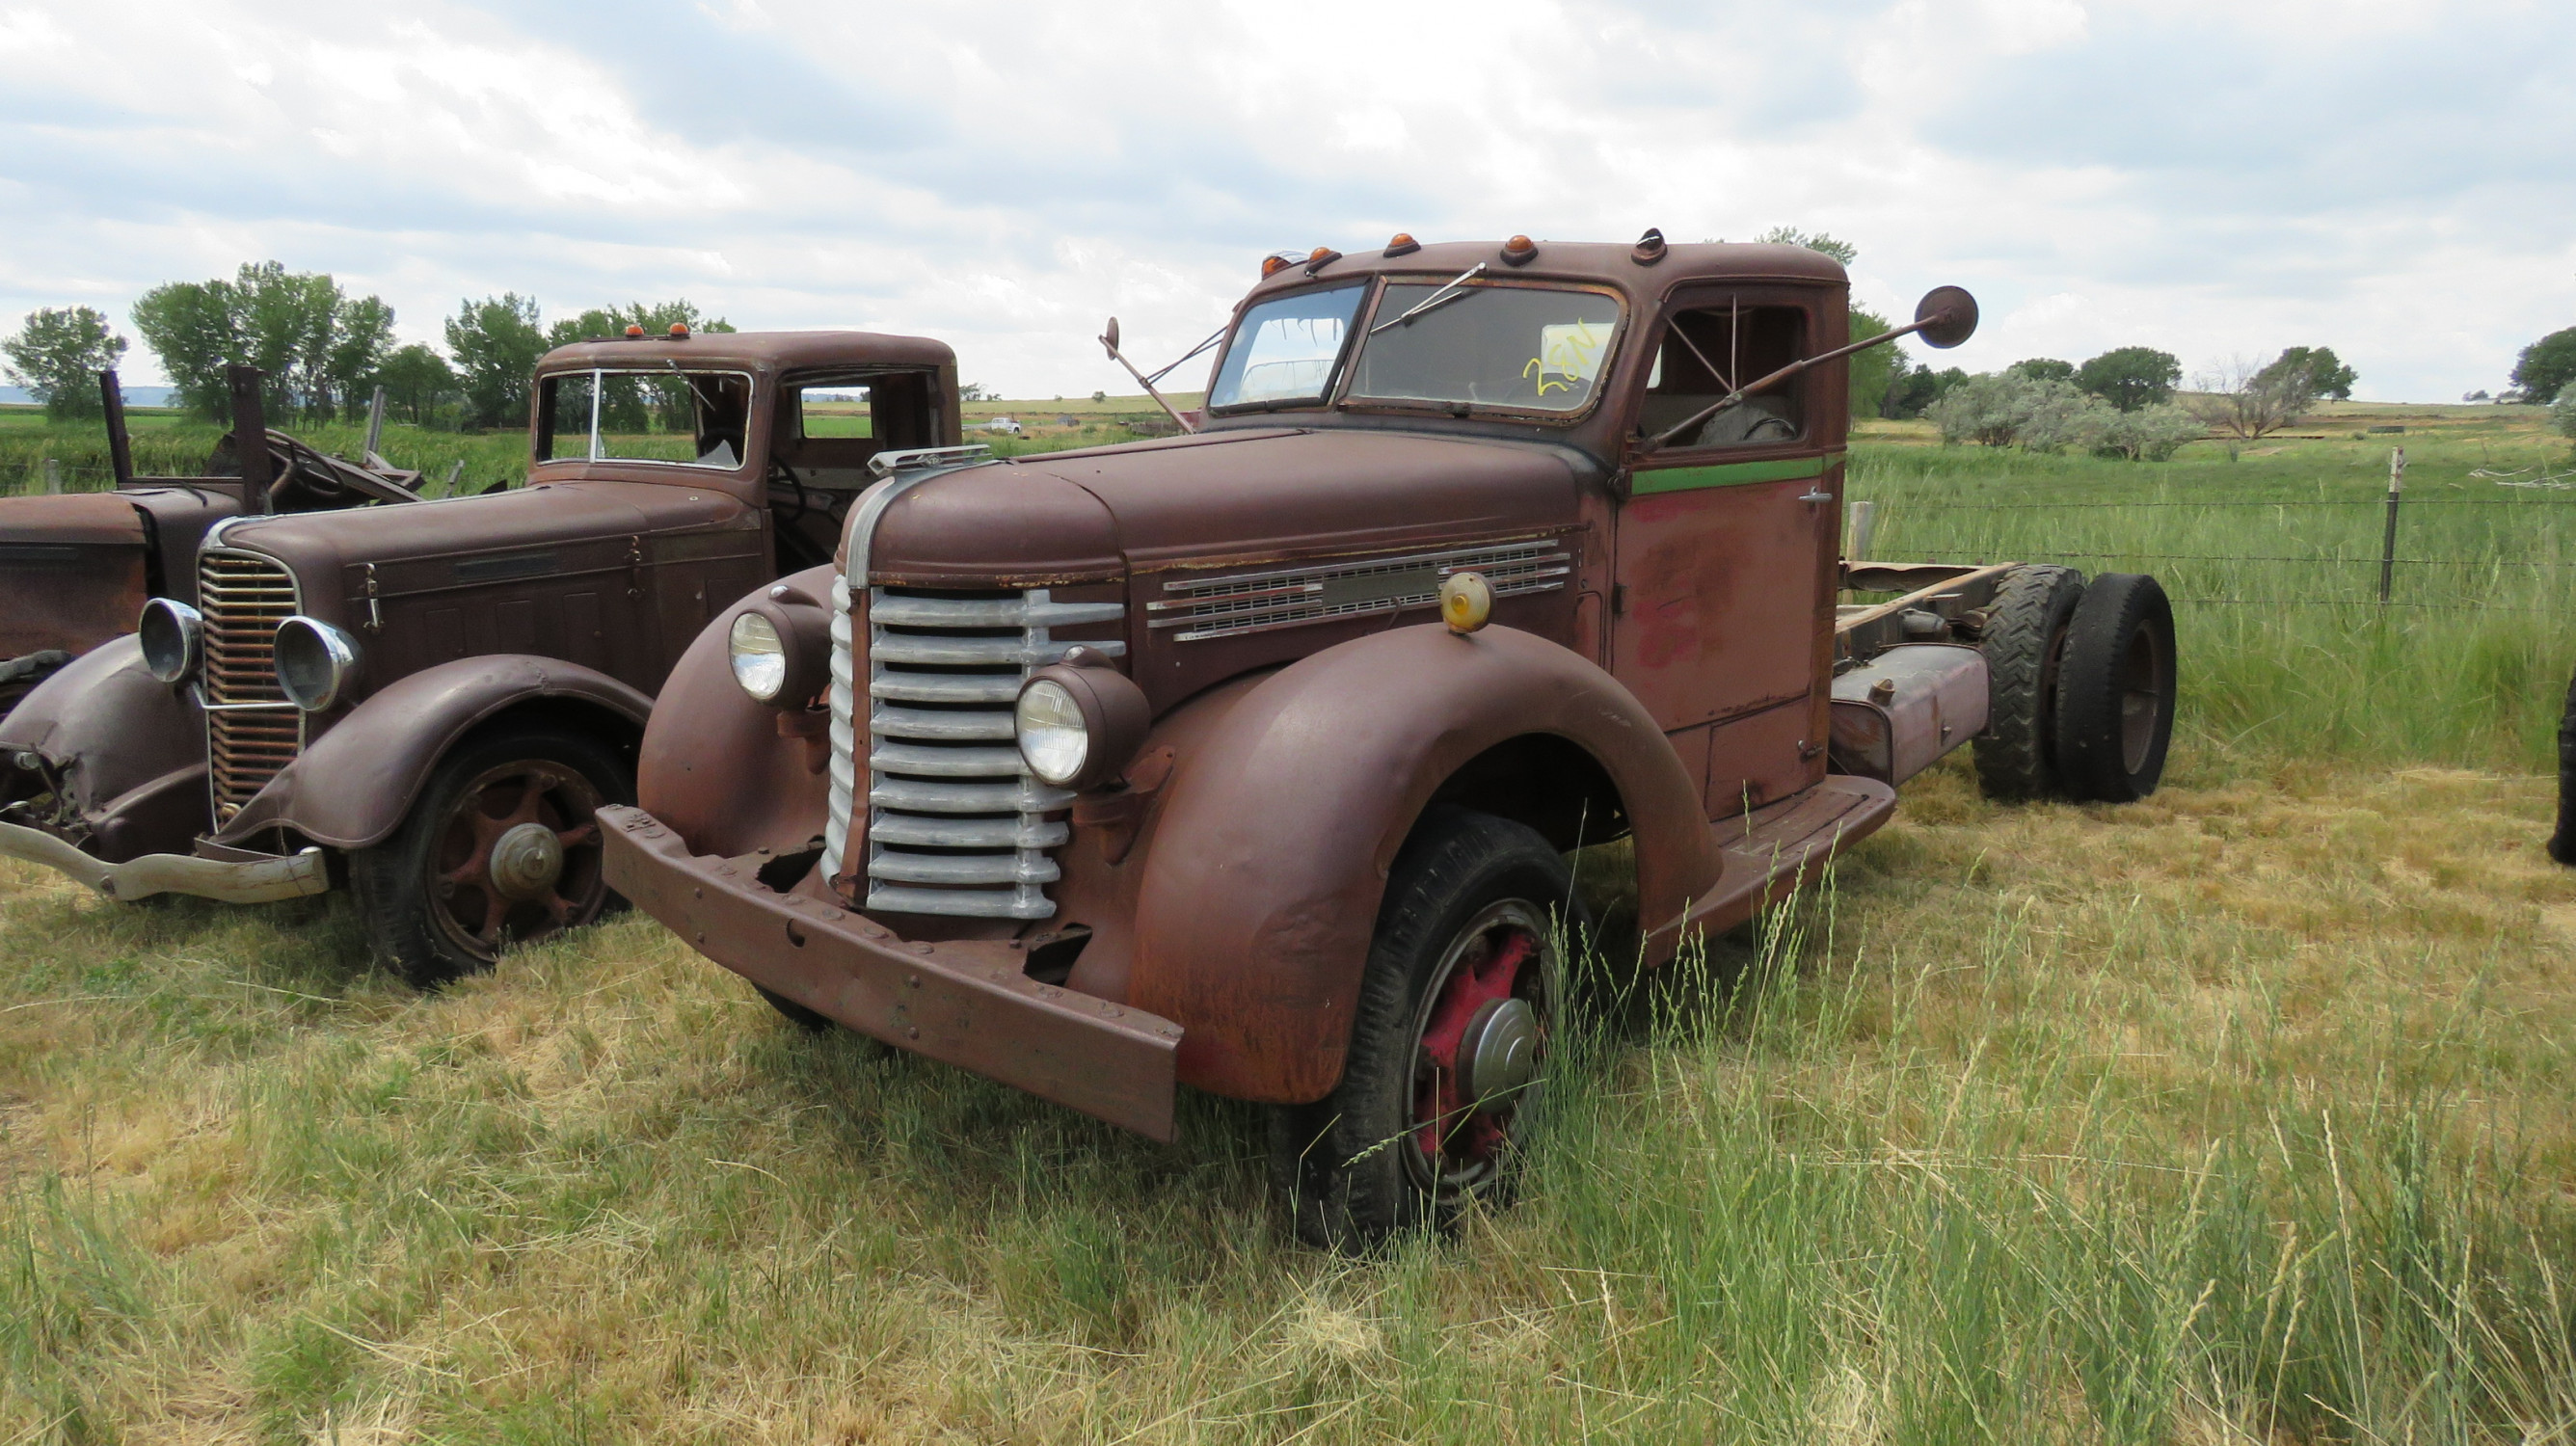 1939 DIAMOND T TRUCK FOR ROD OR RESTORE - Image 1